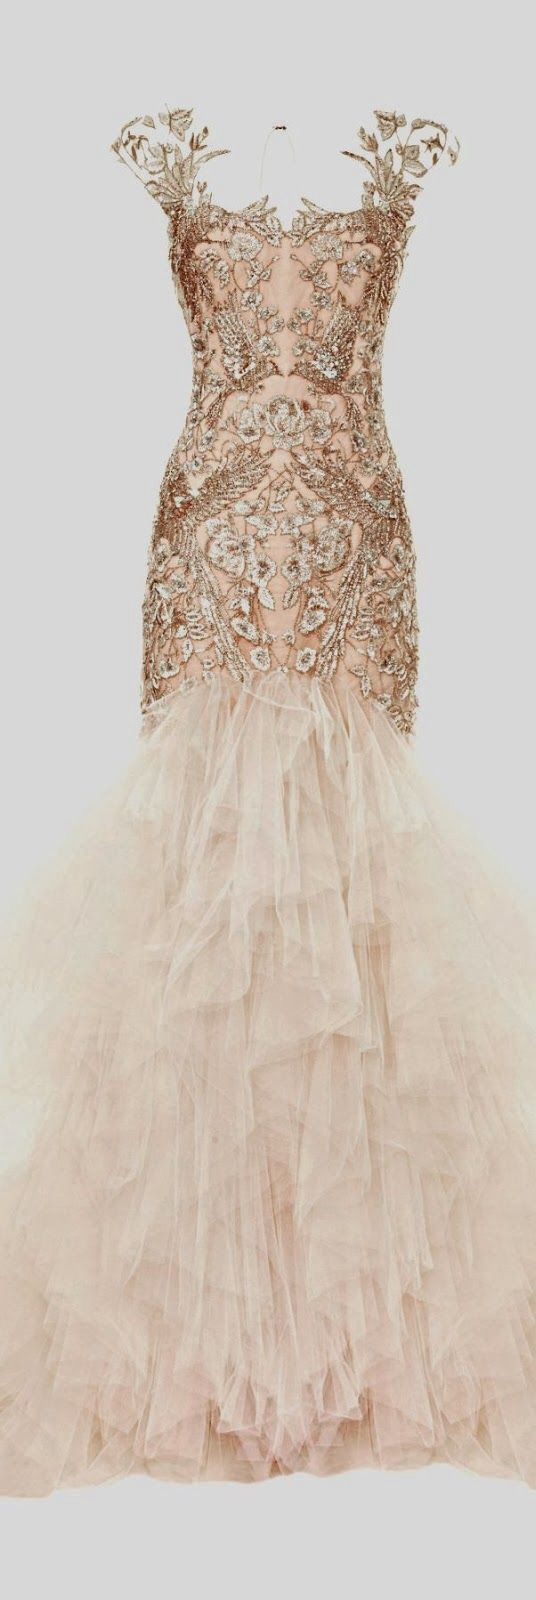 Alexander mcqueen 2016 wedding dresses pinterest for Rose pink wedding dress